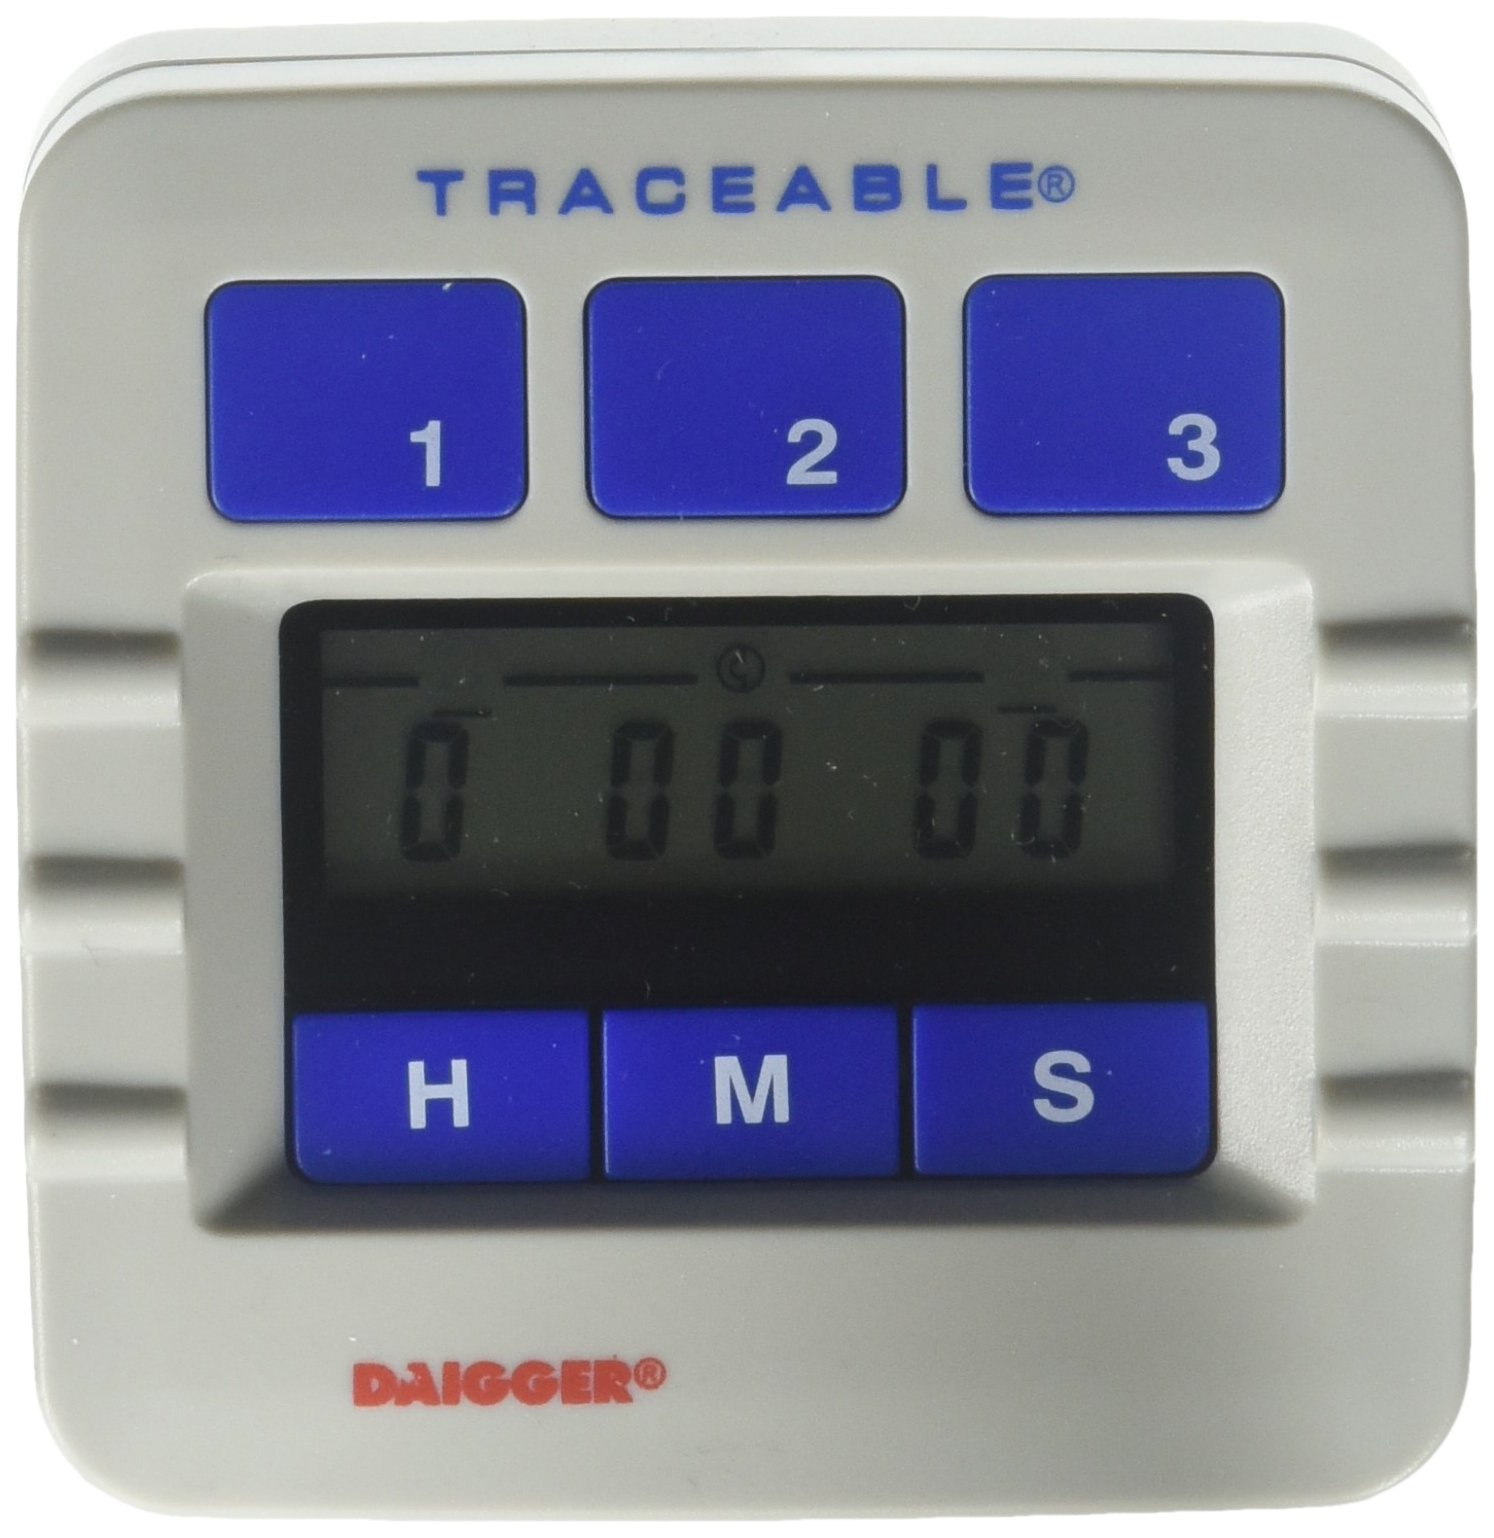 Daigger 8090-DAIGGER 10 hour Triple Program Lab Timer